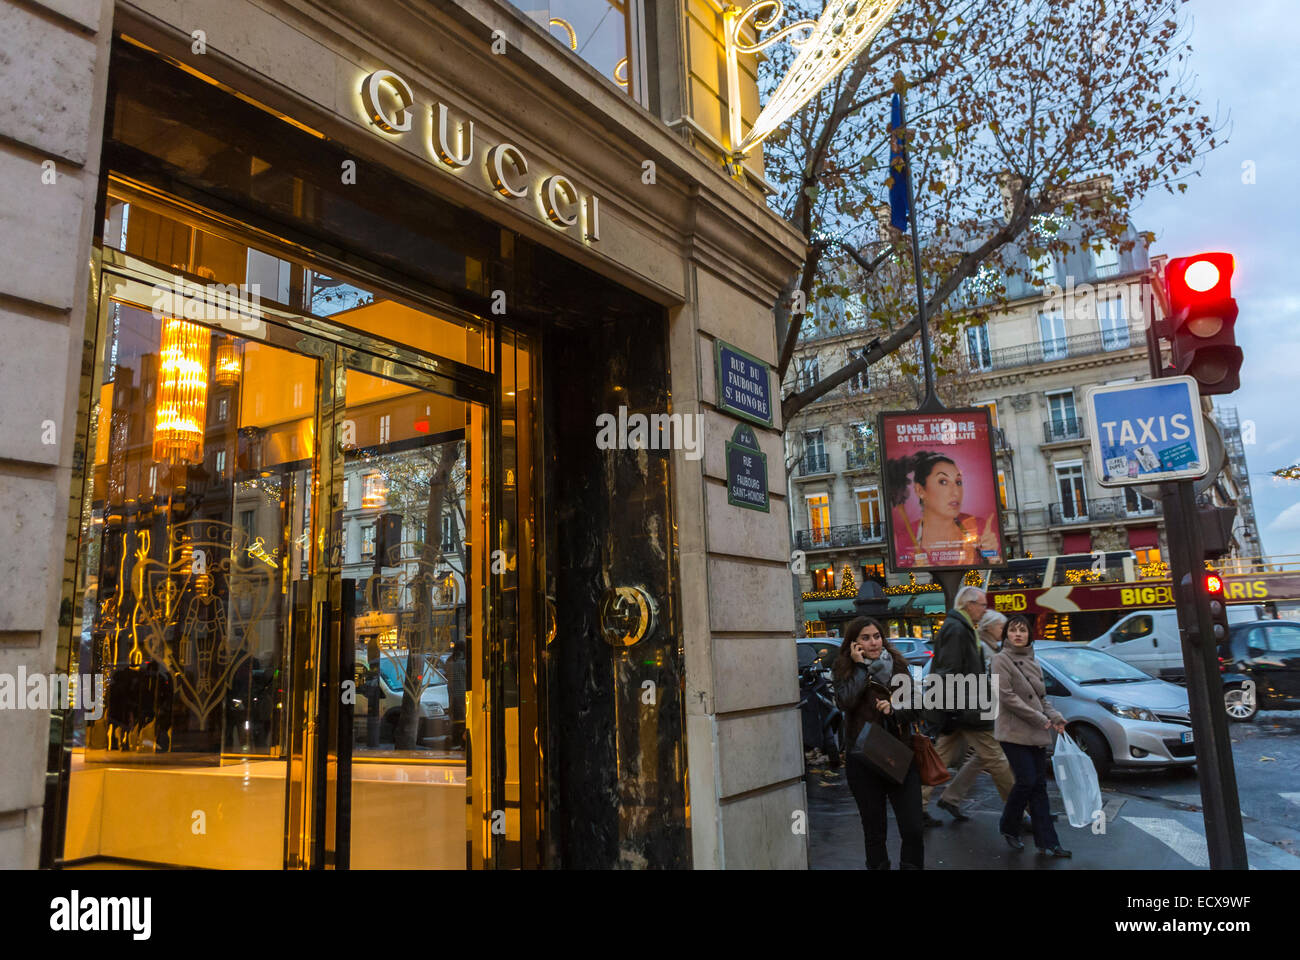 paris france people christmas shopping outside street scenes stock photo 76795867 alamy. Black Bedroom Furniture Sets. Home Design Ideas